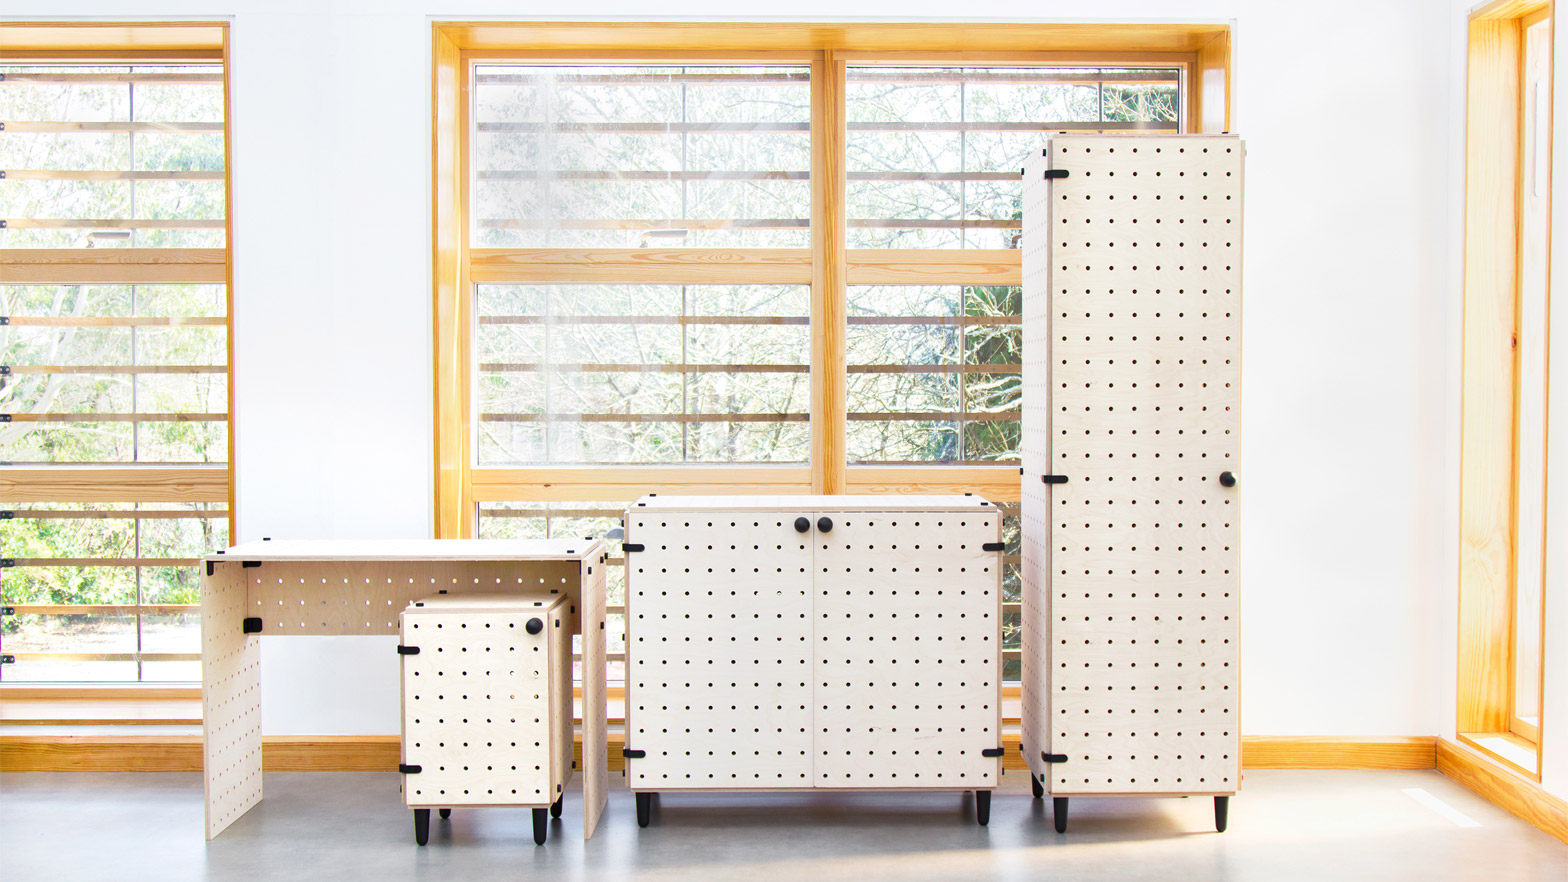 Crisscross Flat Pack Furniture Easier To Take Apart Than Ikea No Disassemble Lego Ideas Proposal Makes It Easy